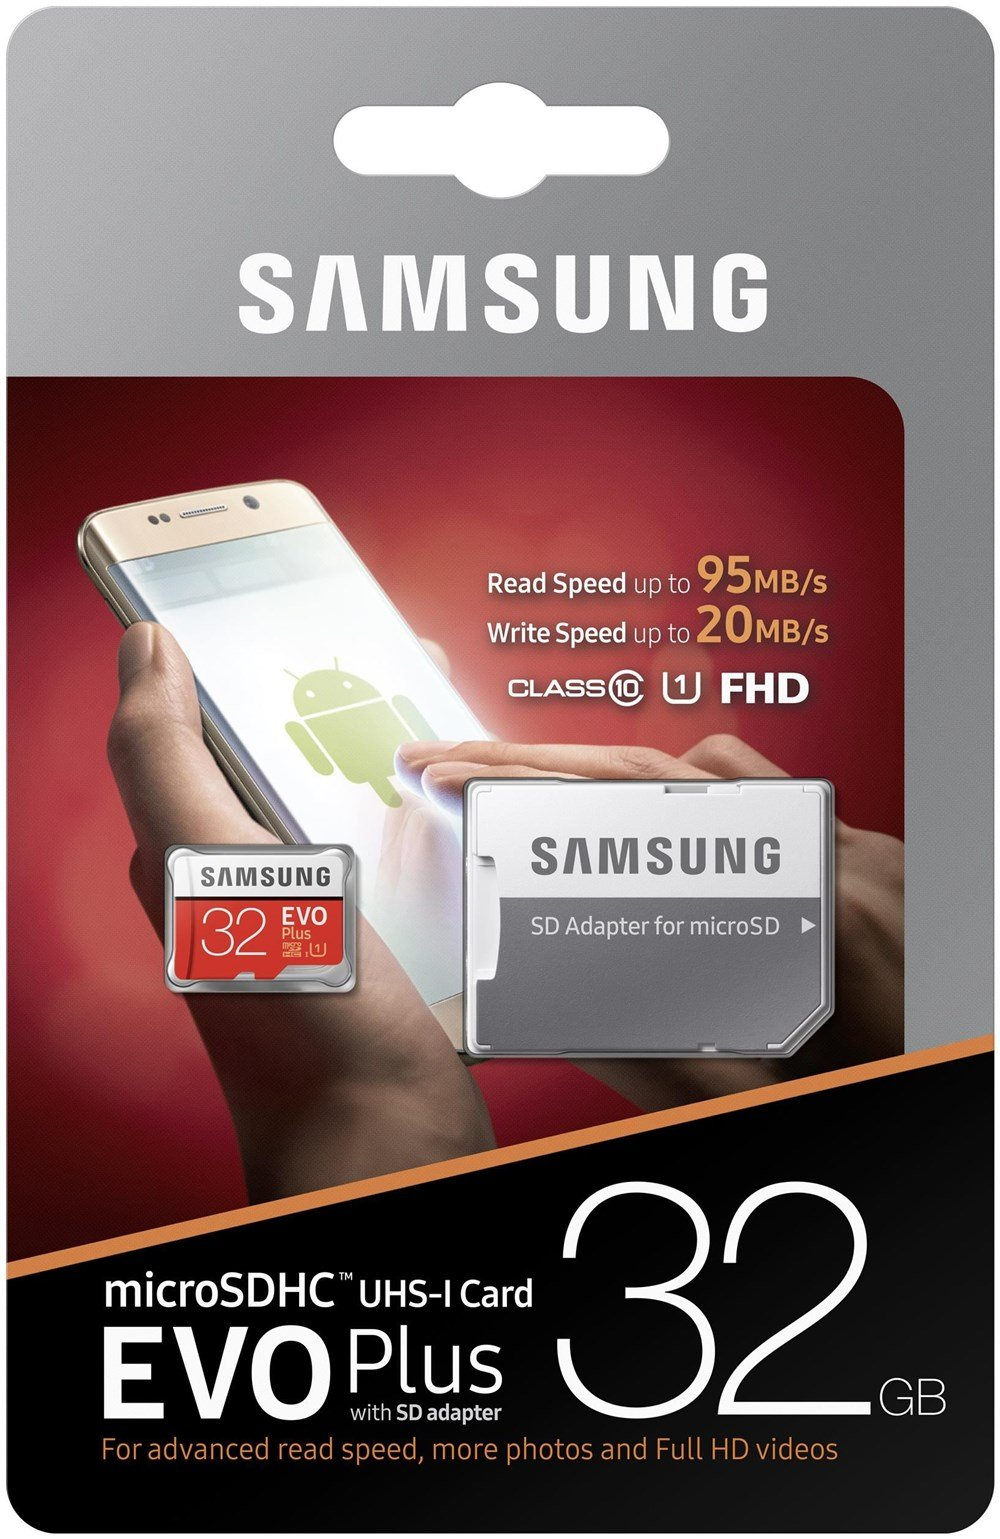 SAMSUNG 32GB EVO Plus MicroSDHC w/Adapter (2017 Model) 7 Samsung Original Models Available: MB-MC32GA, MB-MC64GA, MB-MC128GA, MB-MC256GA Compatible with a wide range of devices for both SD and micro SD (Includes Full-Size SD Adapter.) Excellent Performance for 4K UHD Video and broad compatibility across multiple applications